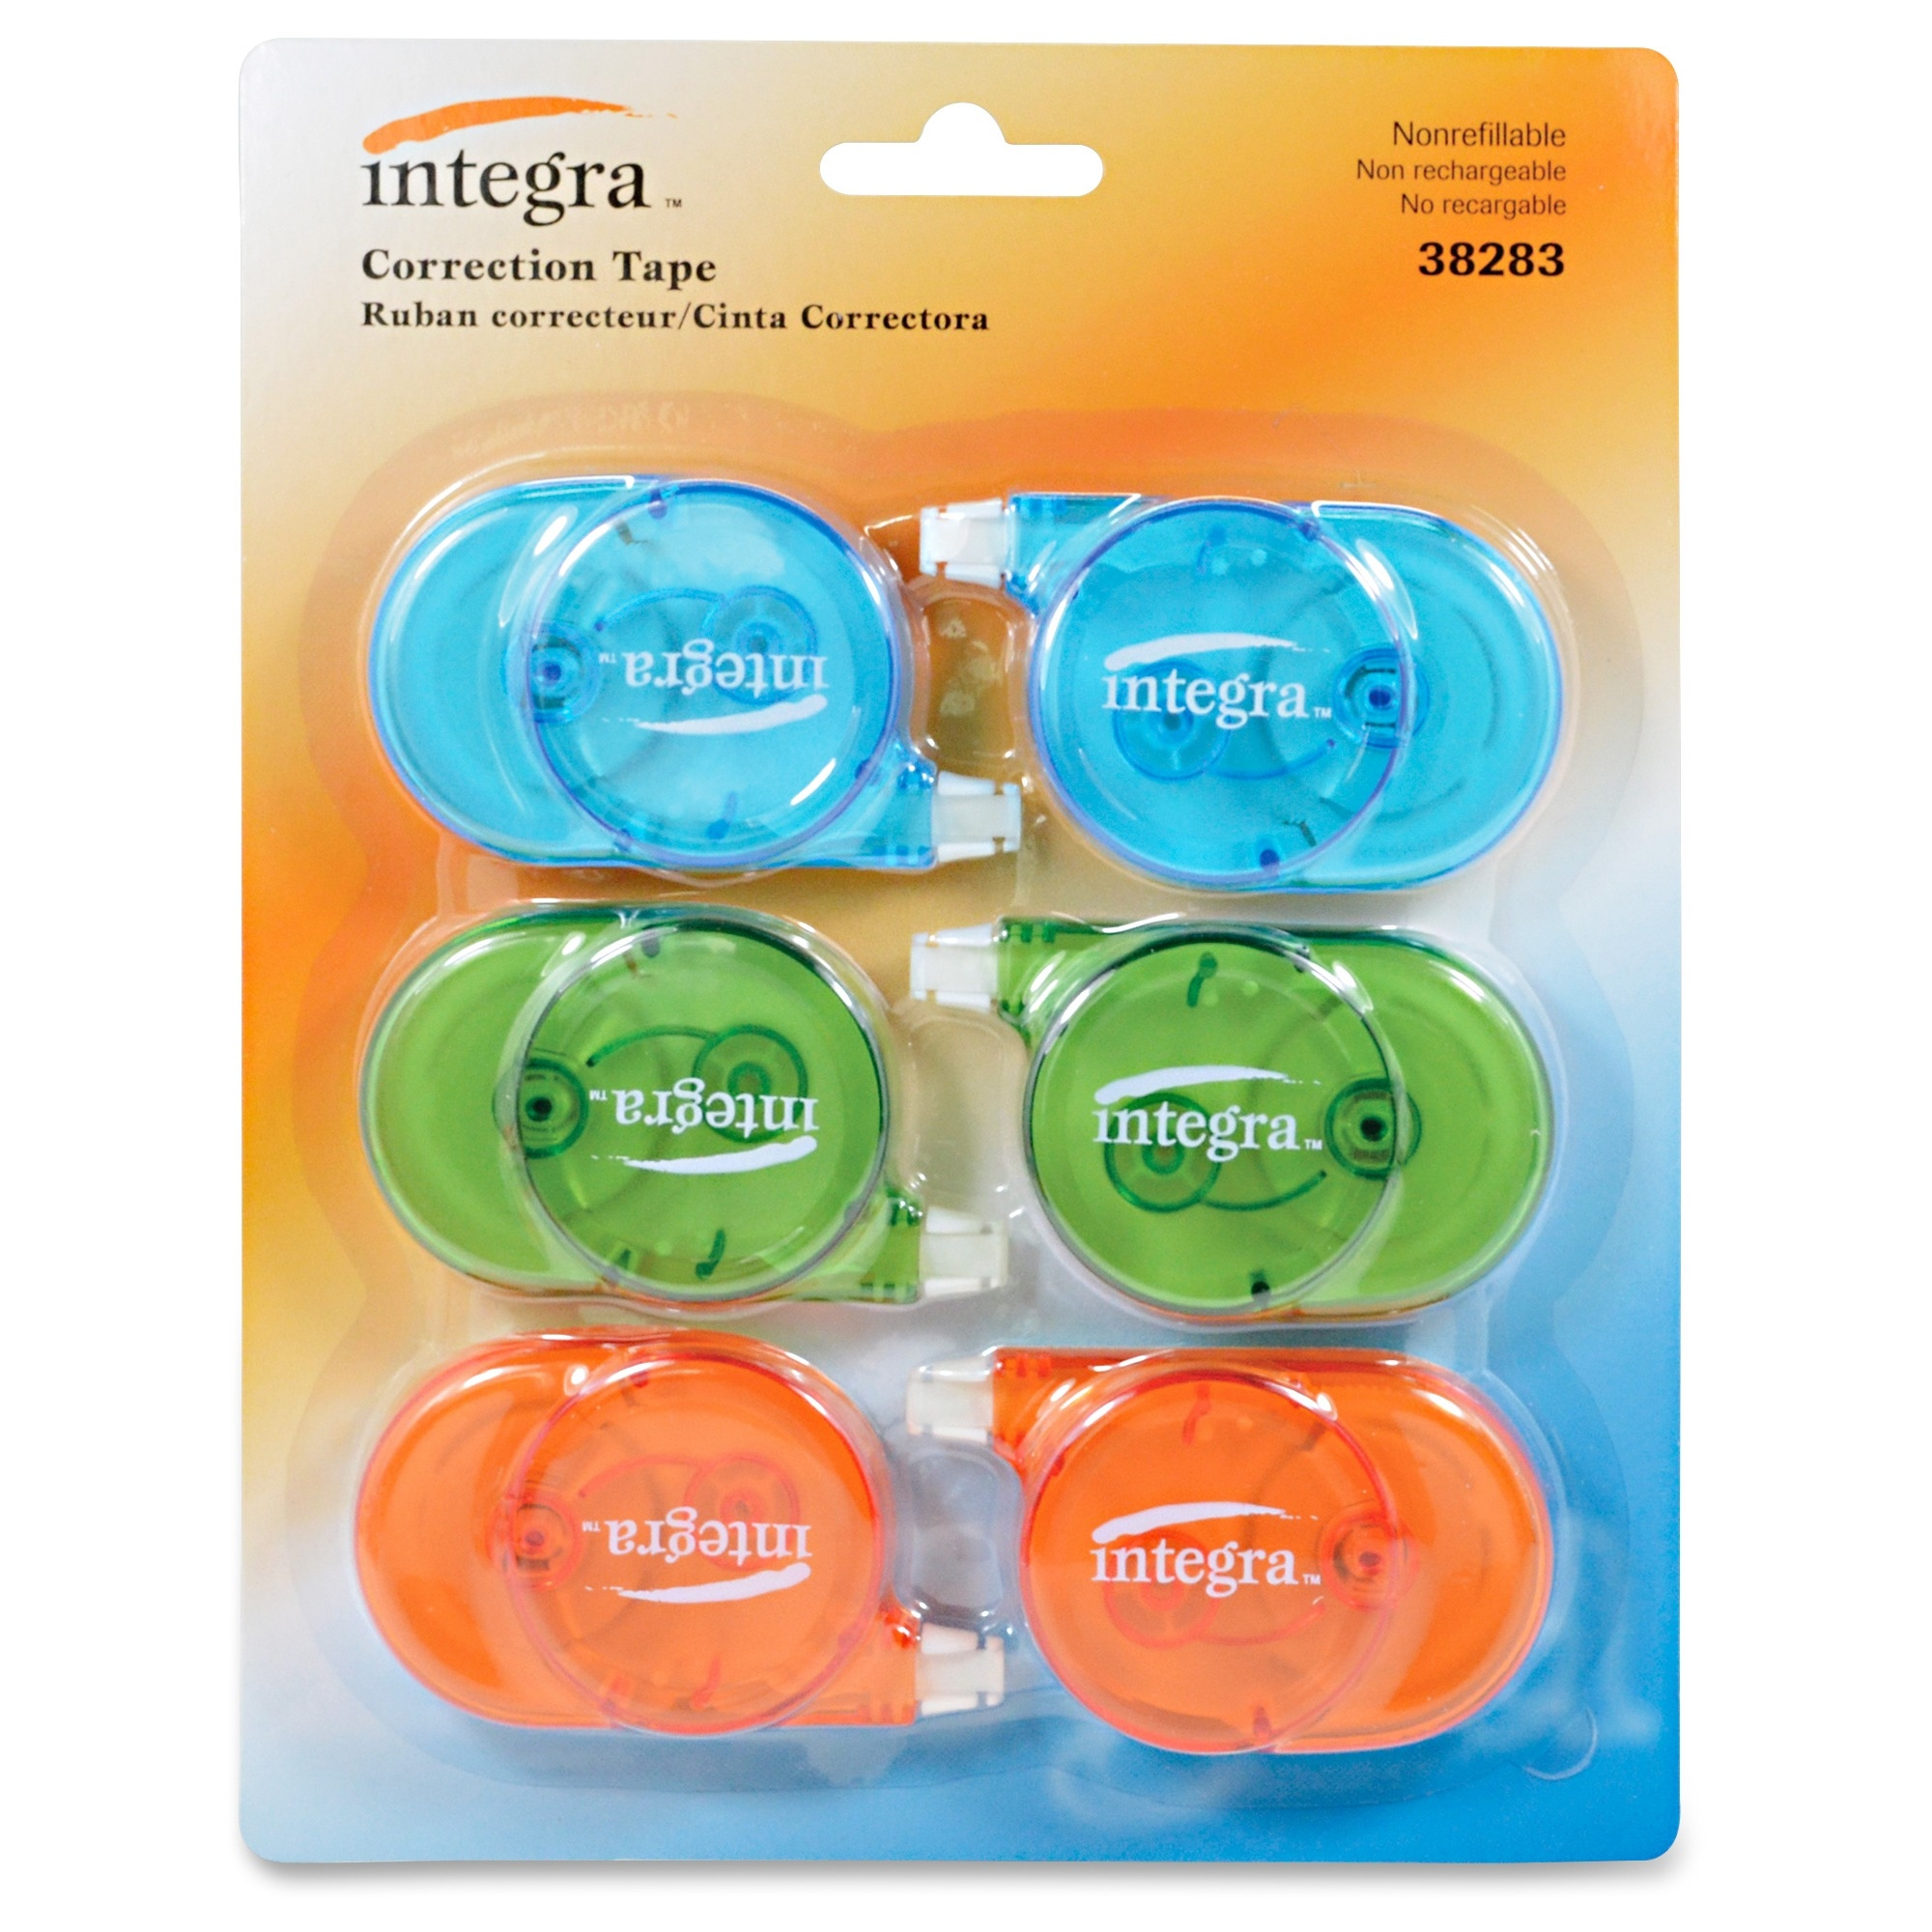 Integra Transparent Case Correction Tape Pack - Writable Surface, Non-refillable - 6 / Pack - Transparent Assorted Dispenser (ita-38283)